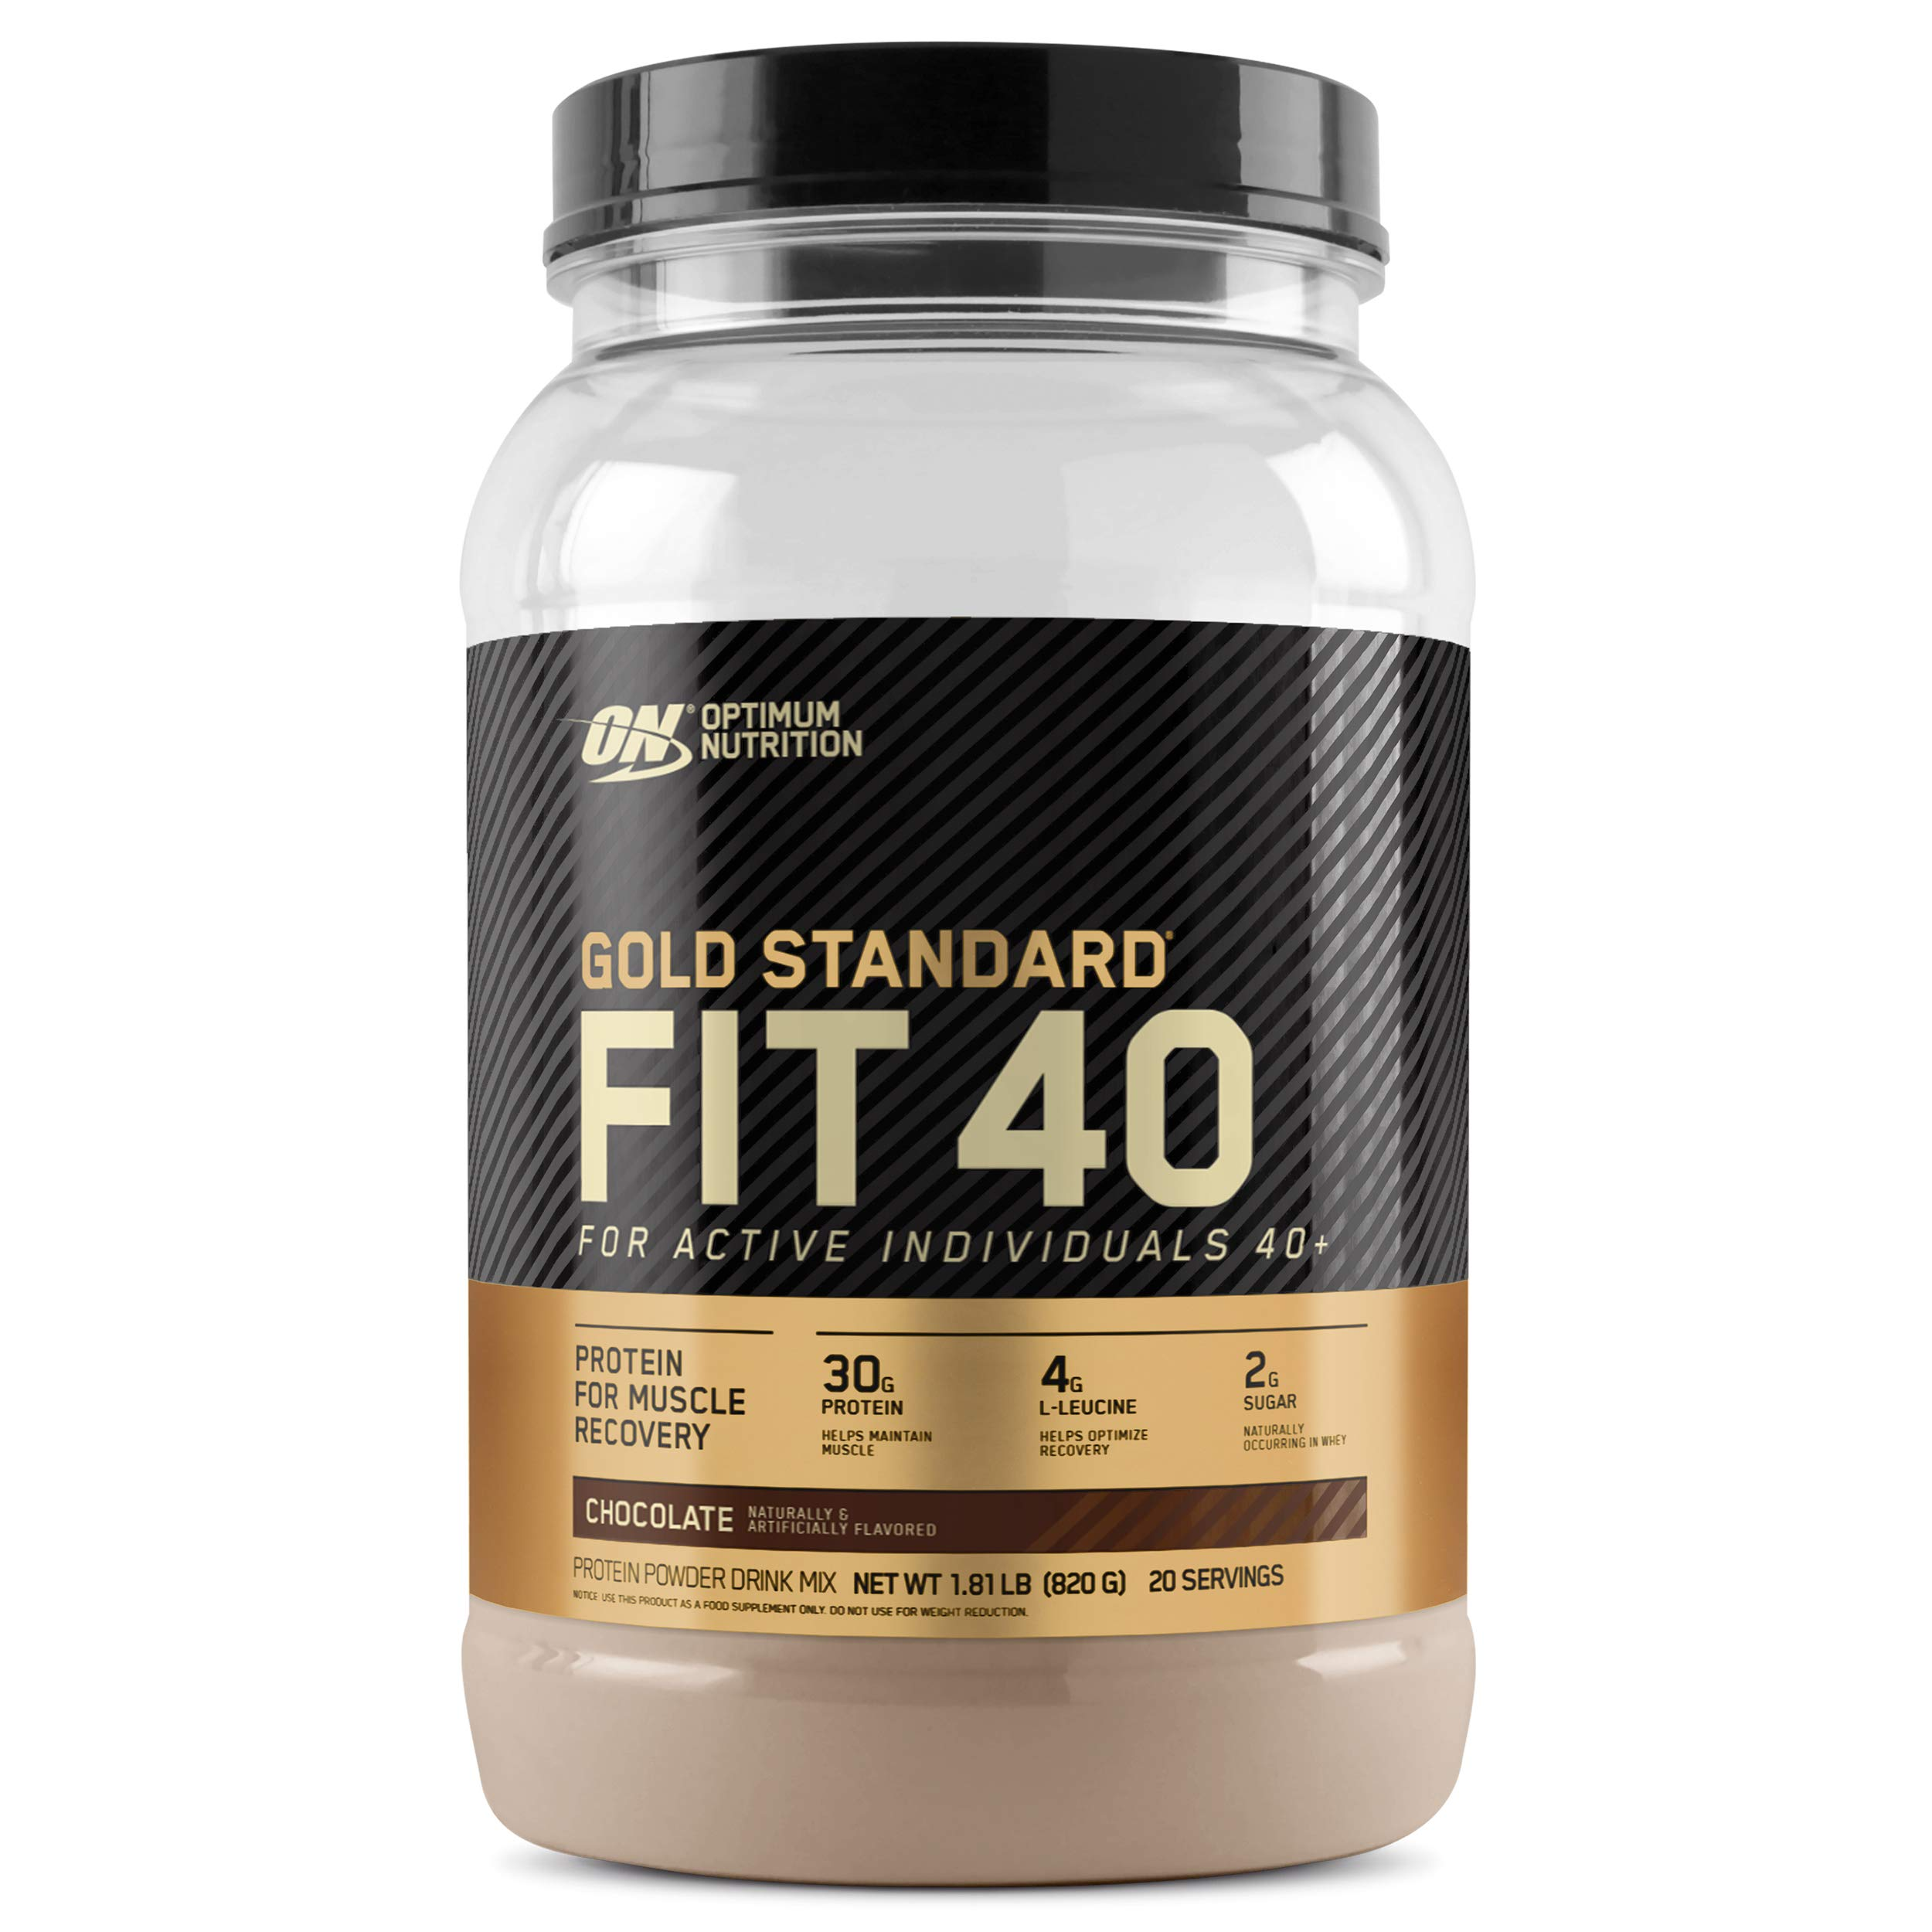 Optimum Nutrition Gold Standard FIT 40 Protein Powder, Chocolate, 1.81 Pounds